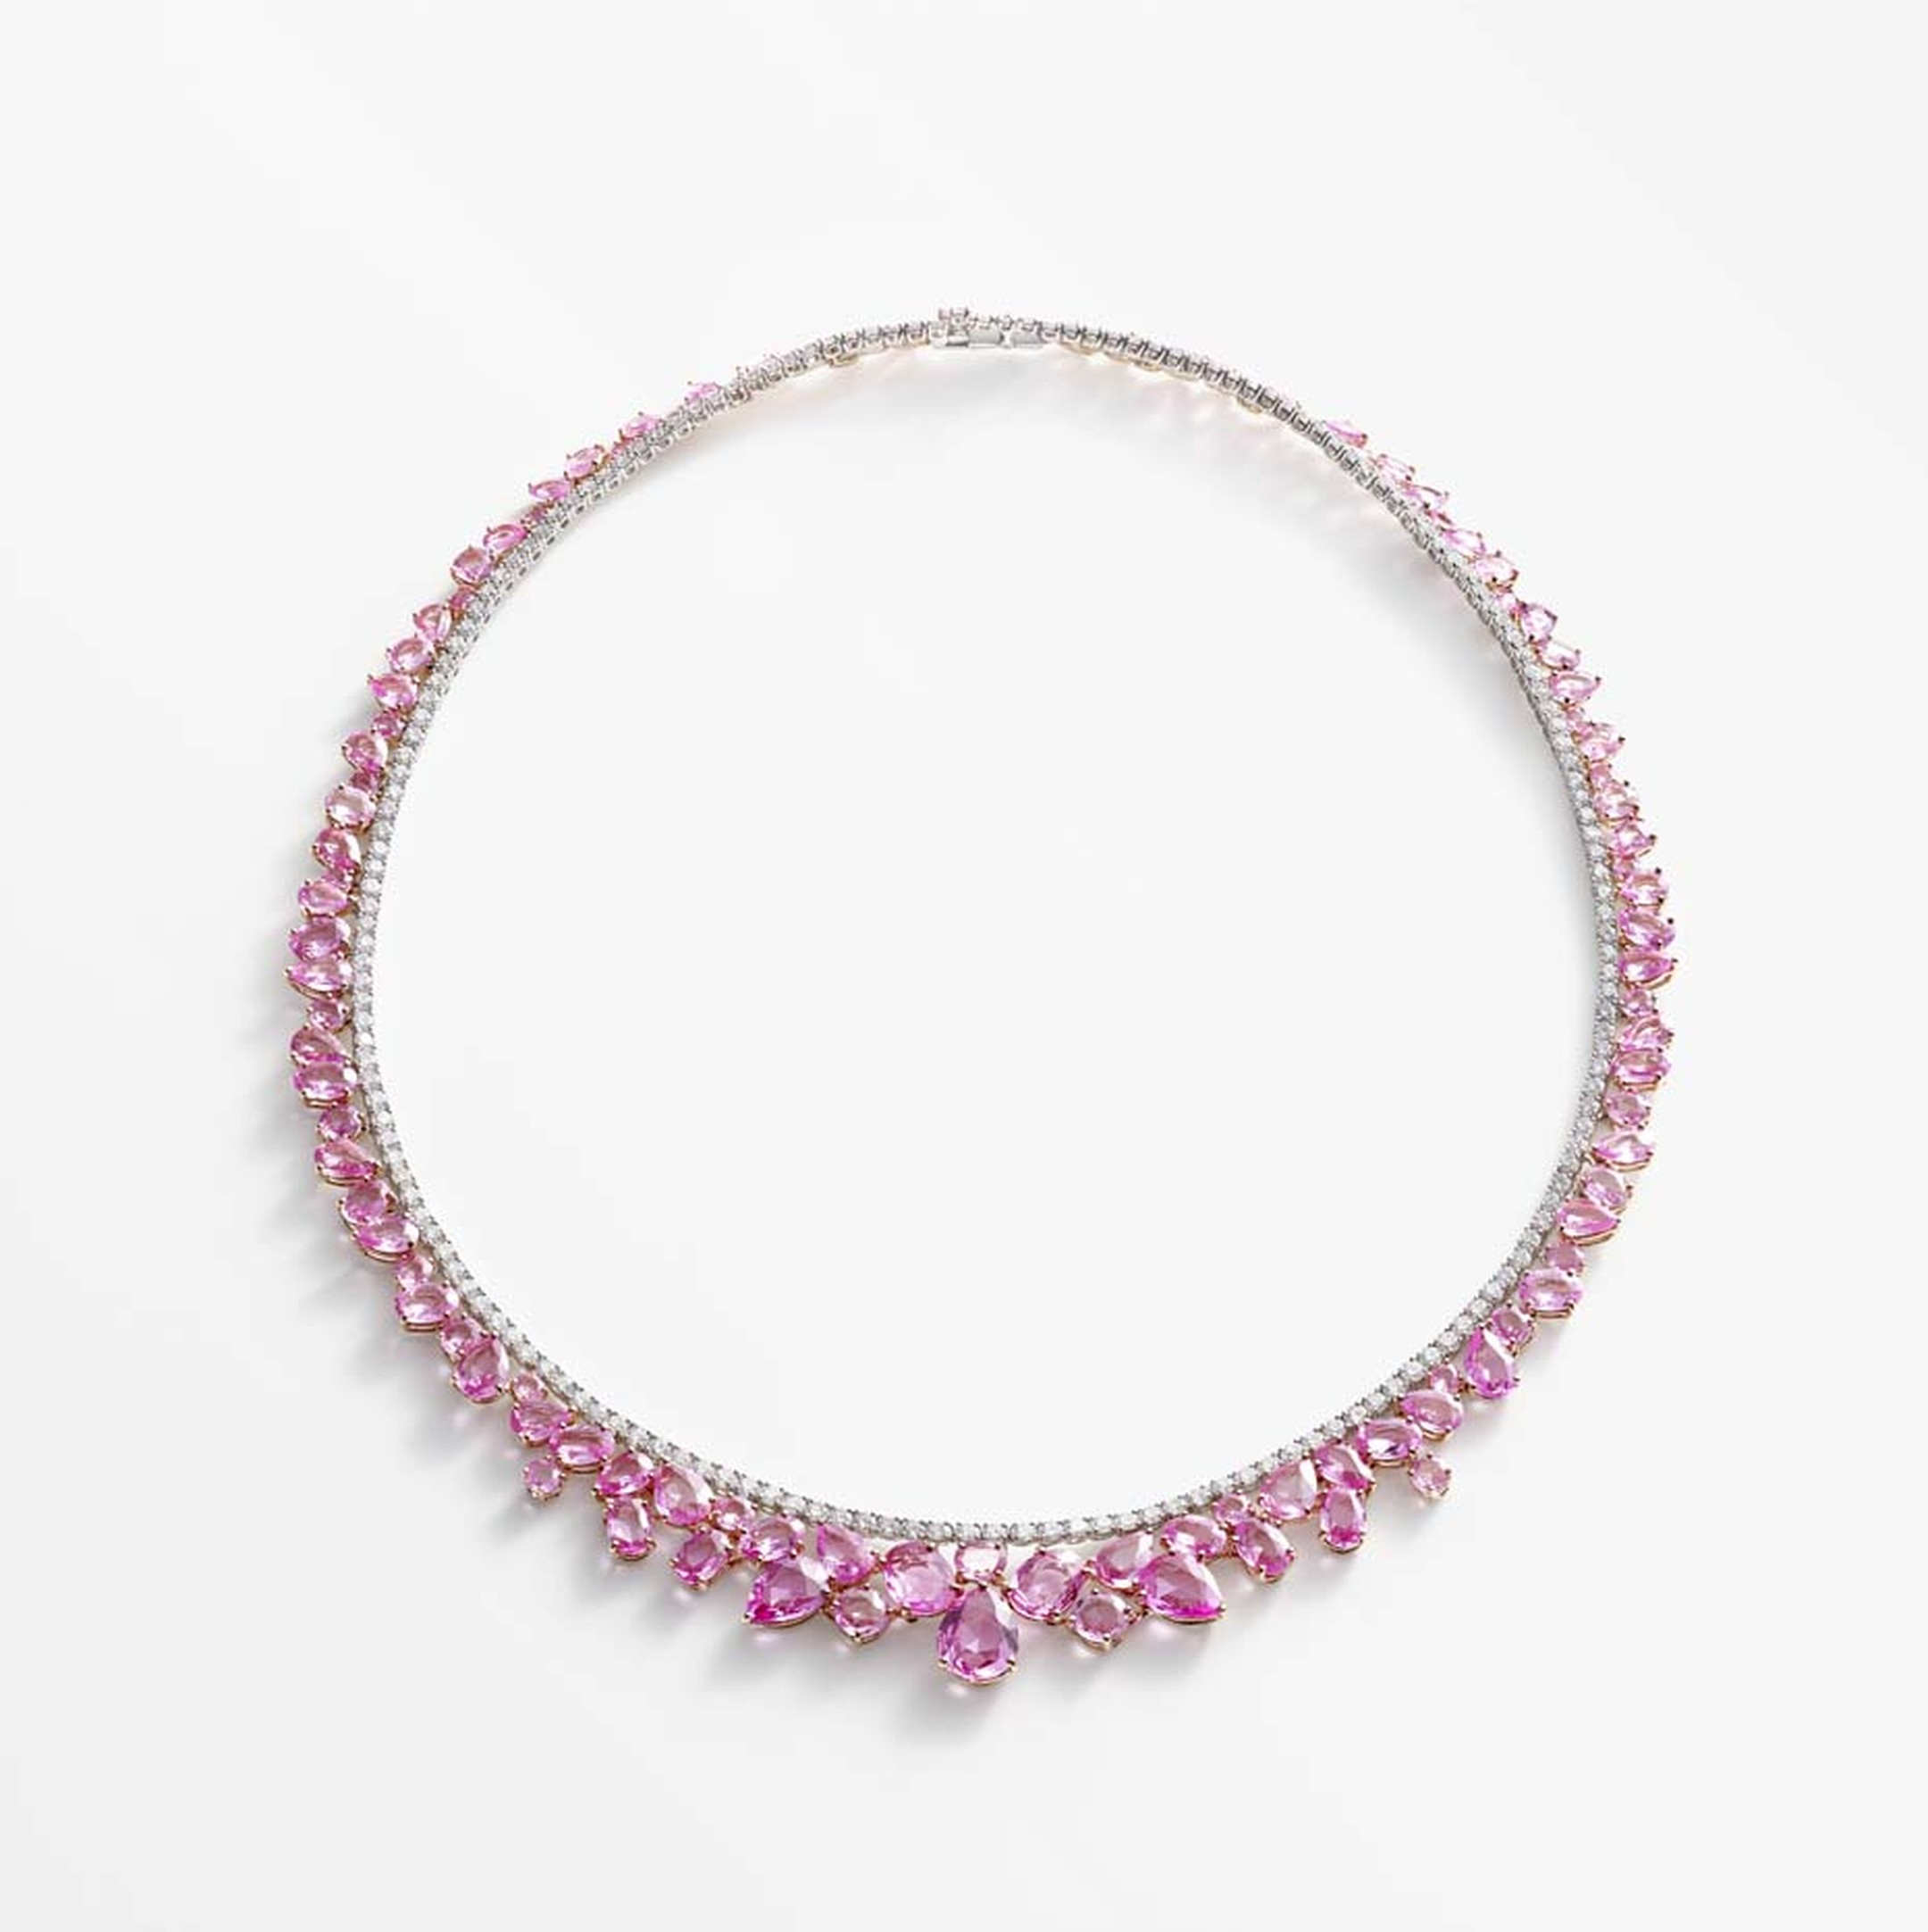 This pink sapphire necklace is the centrepiece of the new William & Son jewellery collection Beneath The Rose and features irregular clusters of rose-cut pink sapphires.